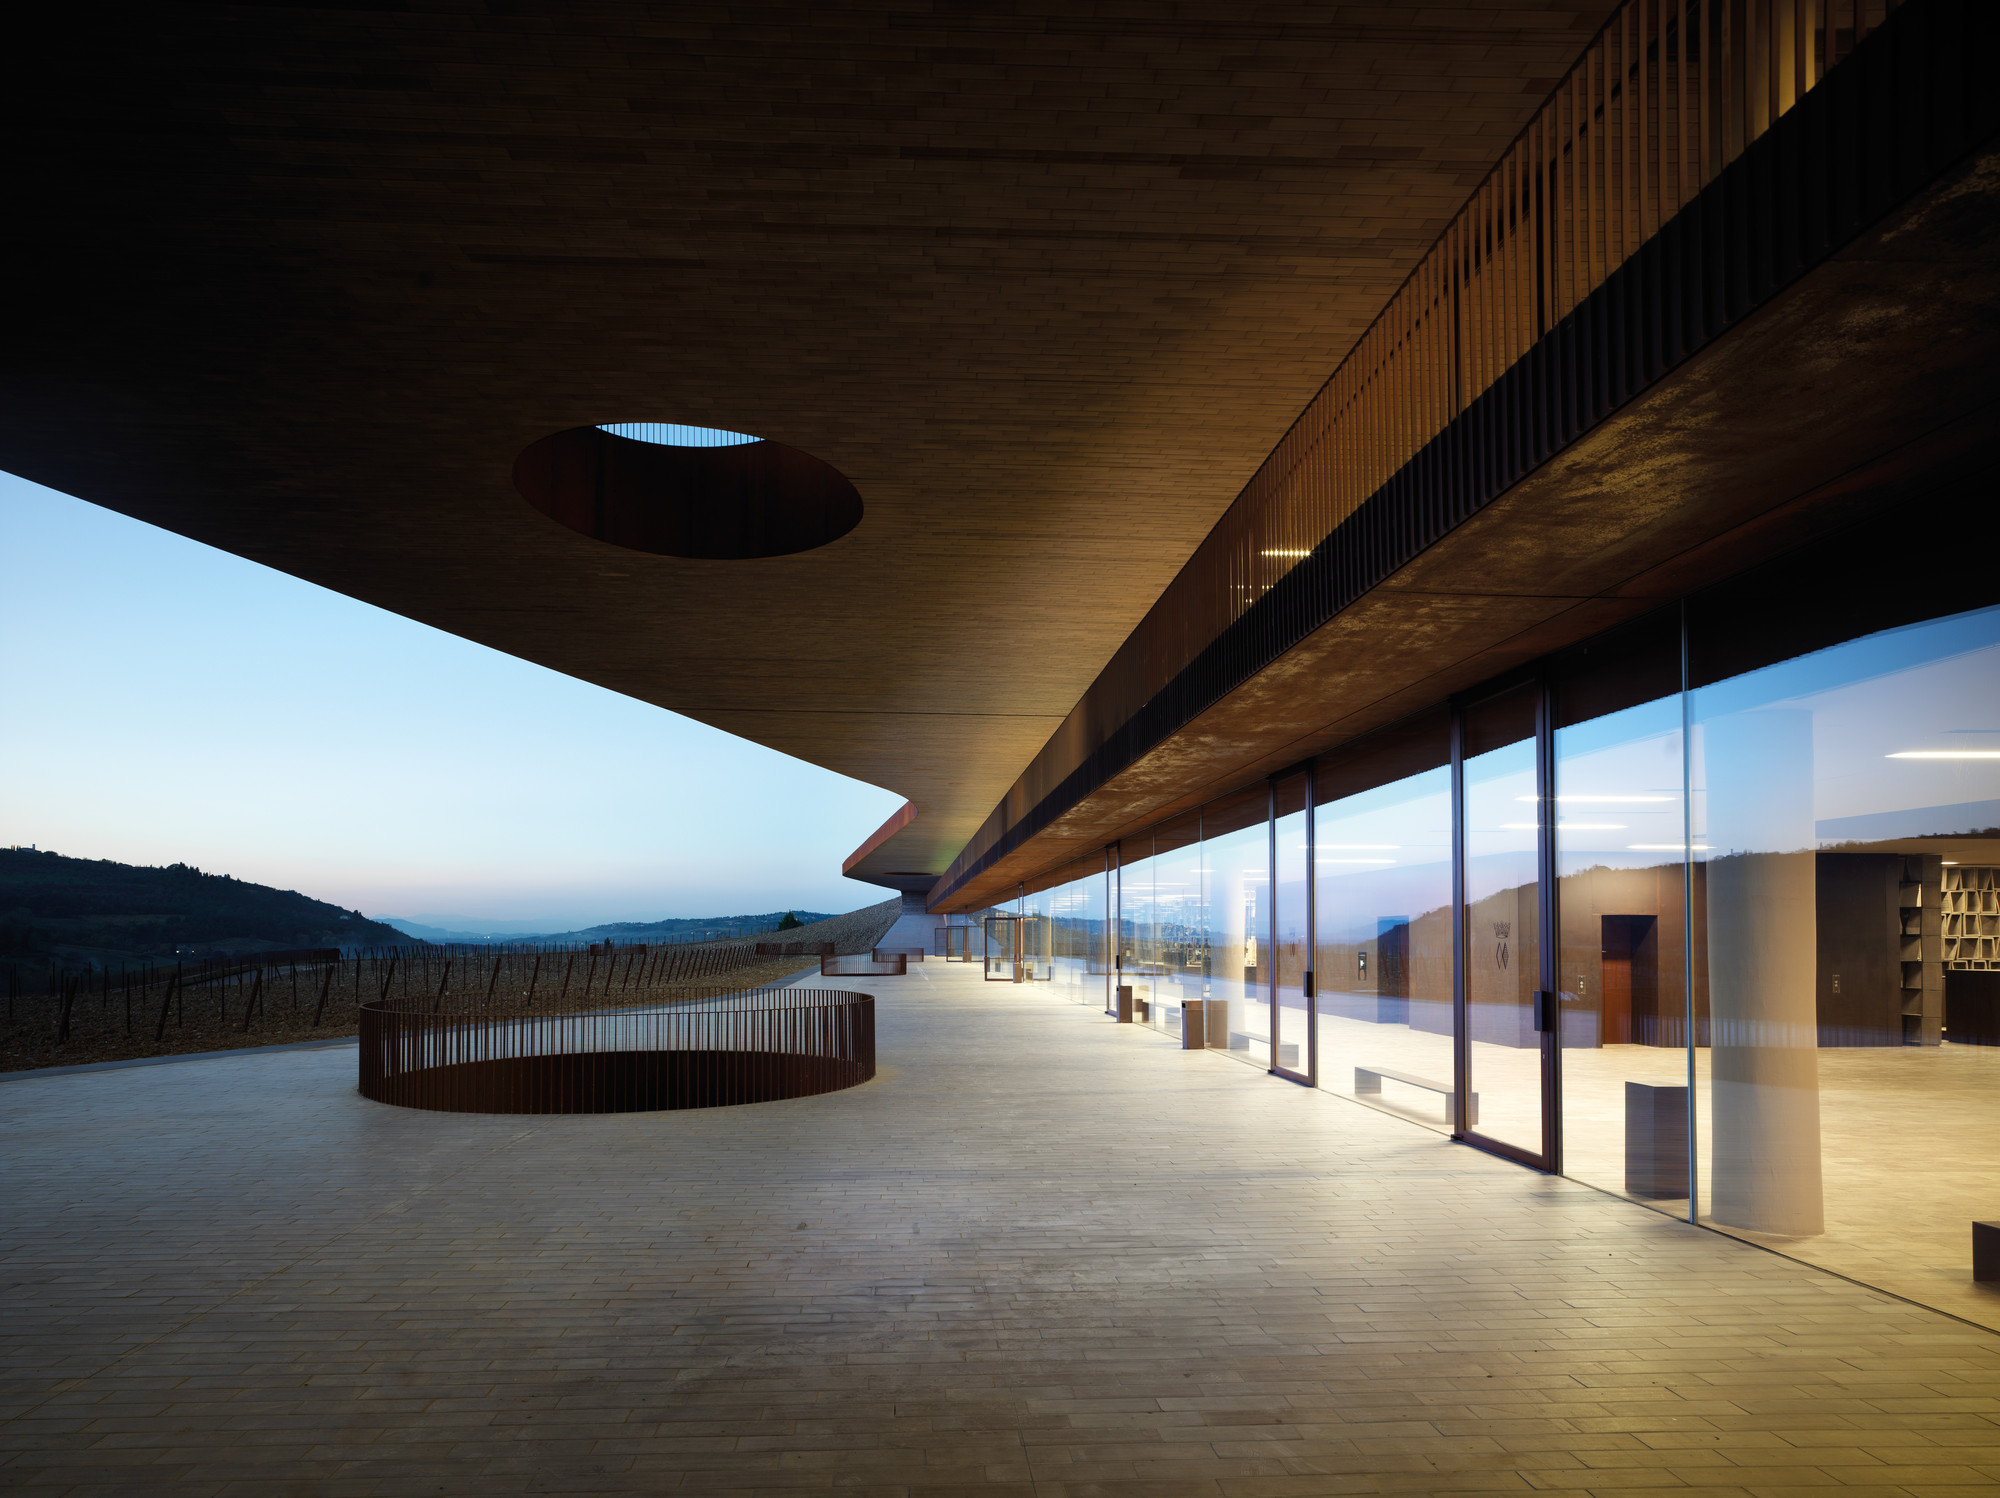 Cantina Antinori was designed by Archea Associati to blend into the hillside